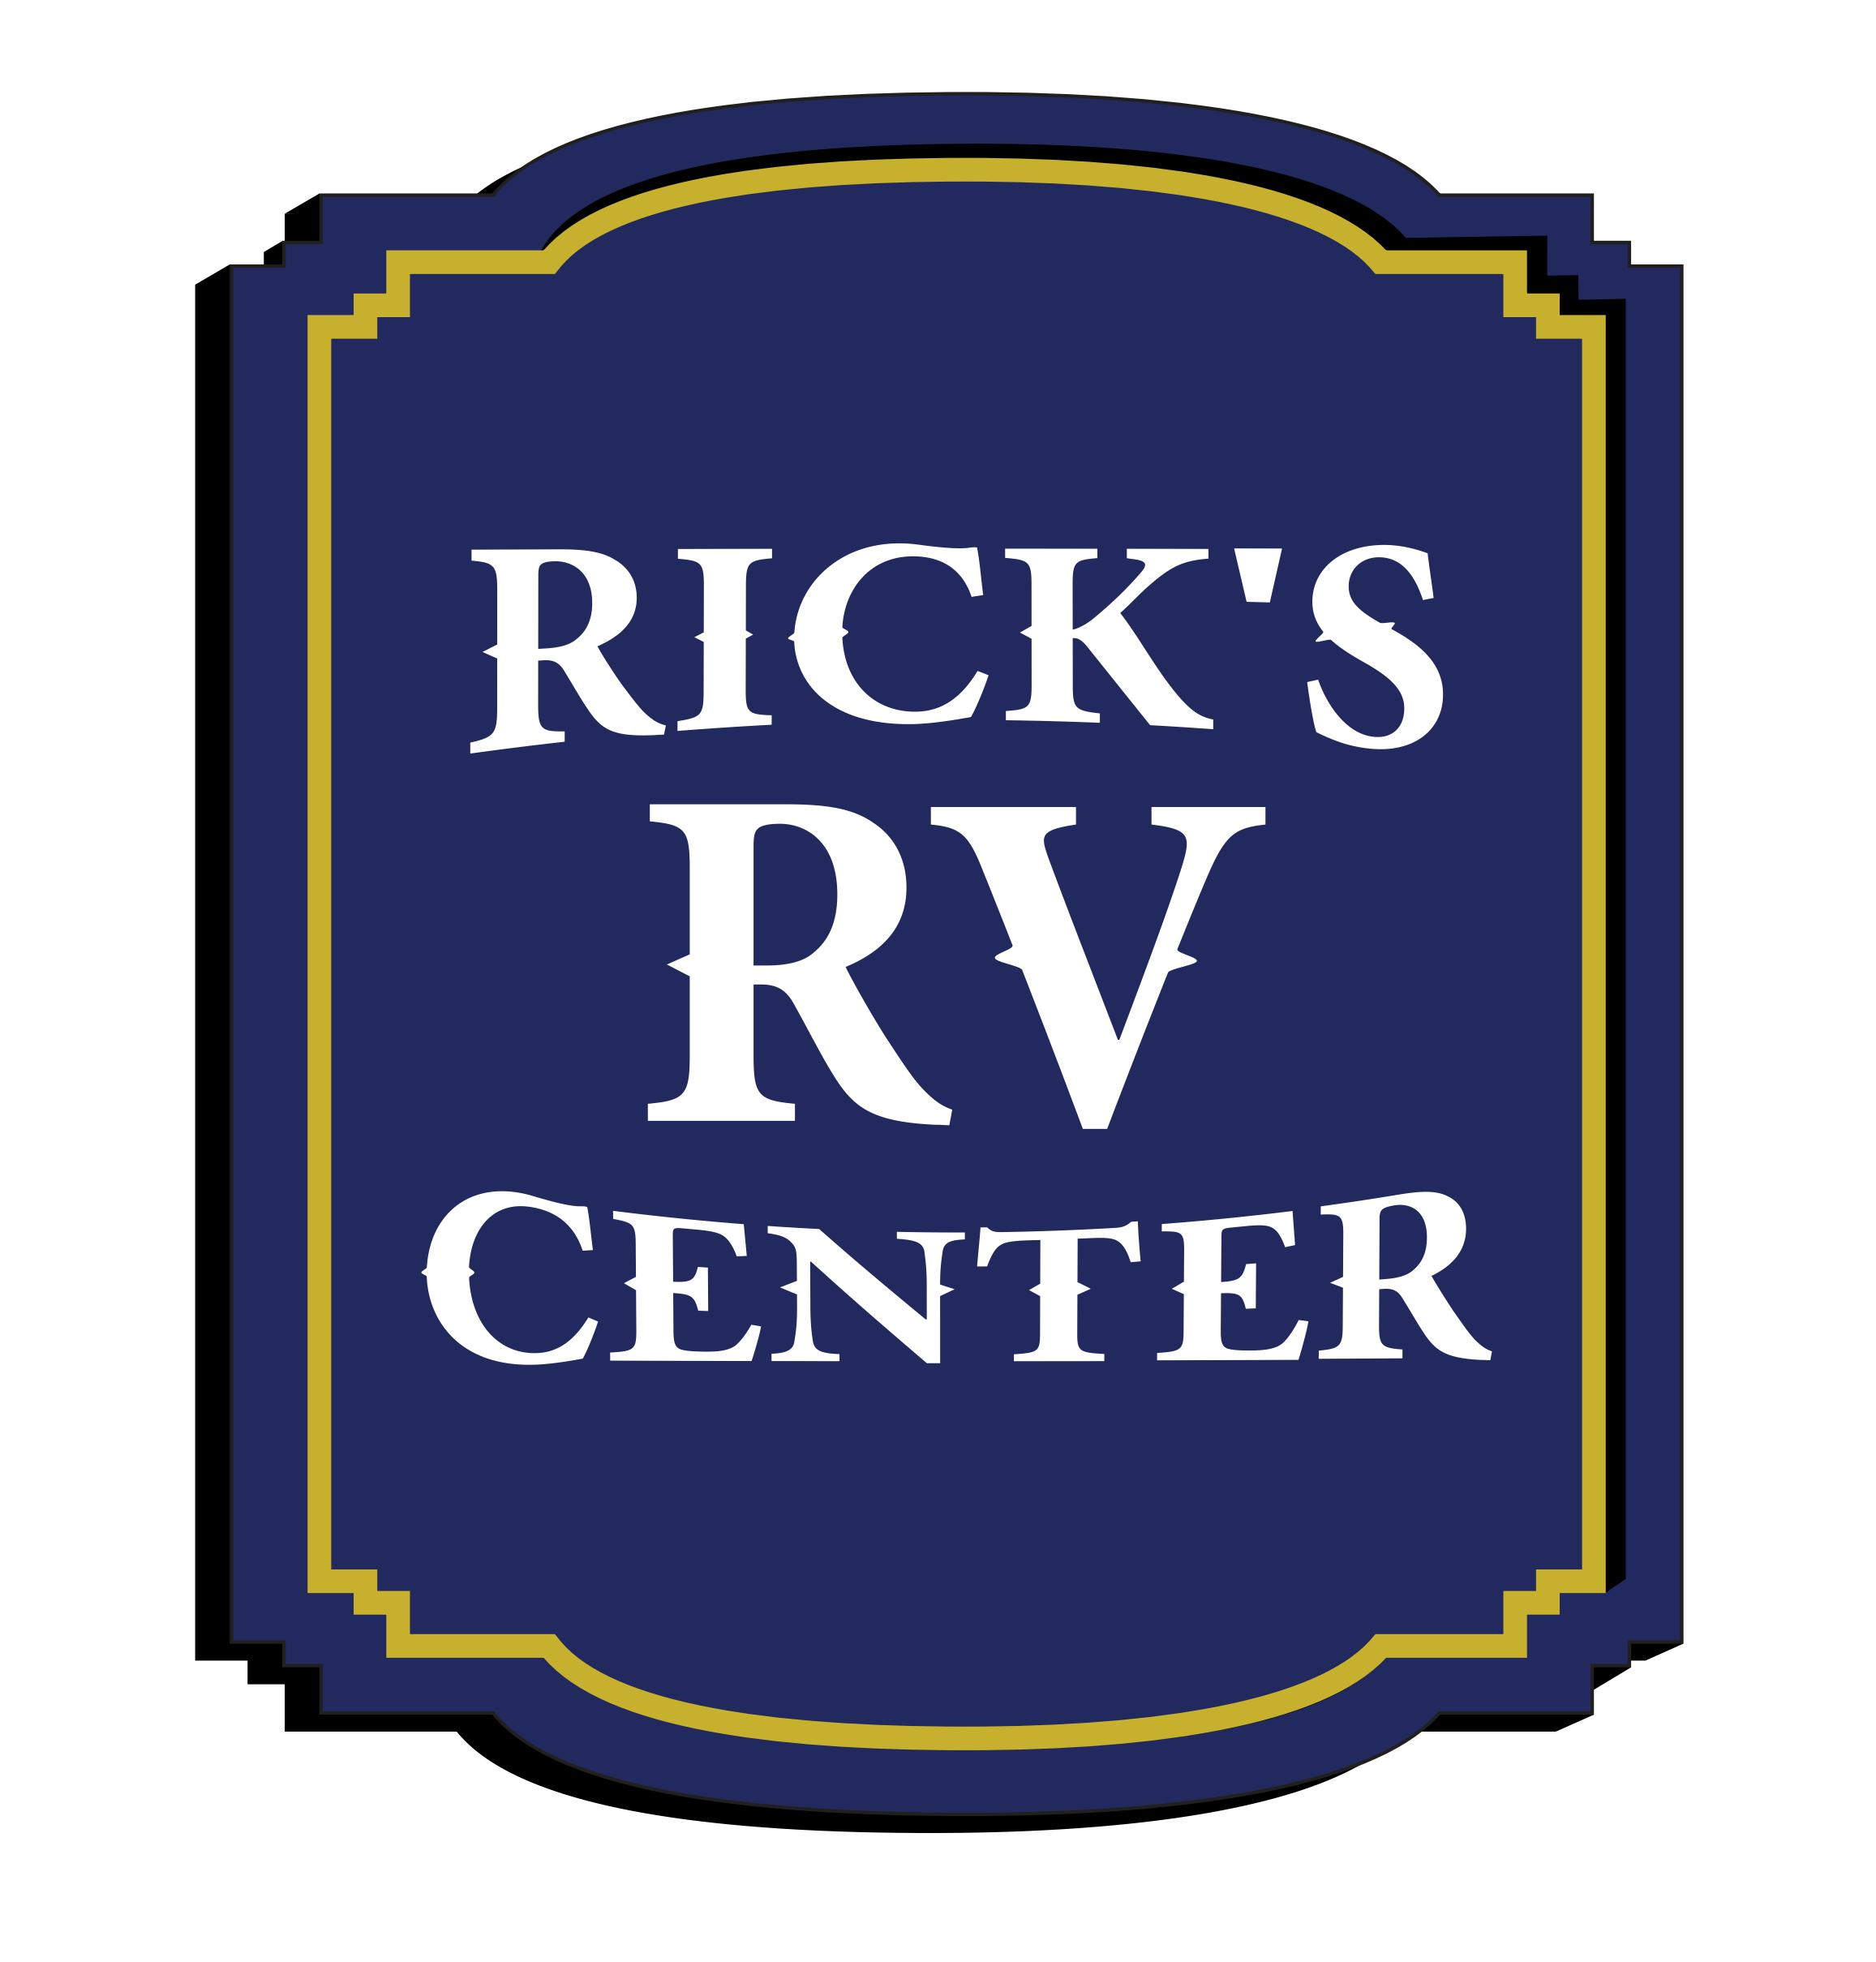 Rick's RV Center